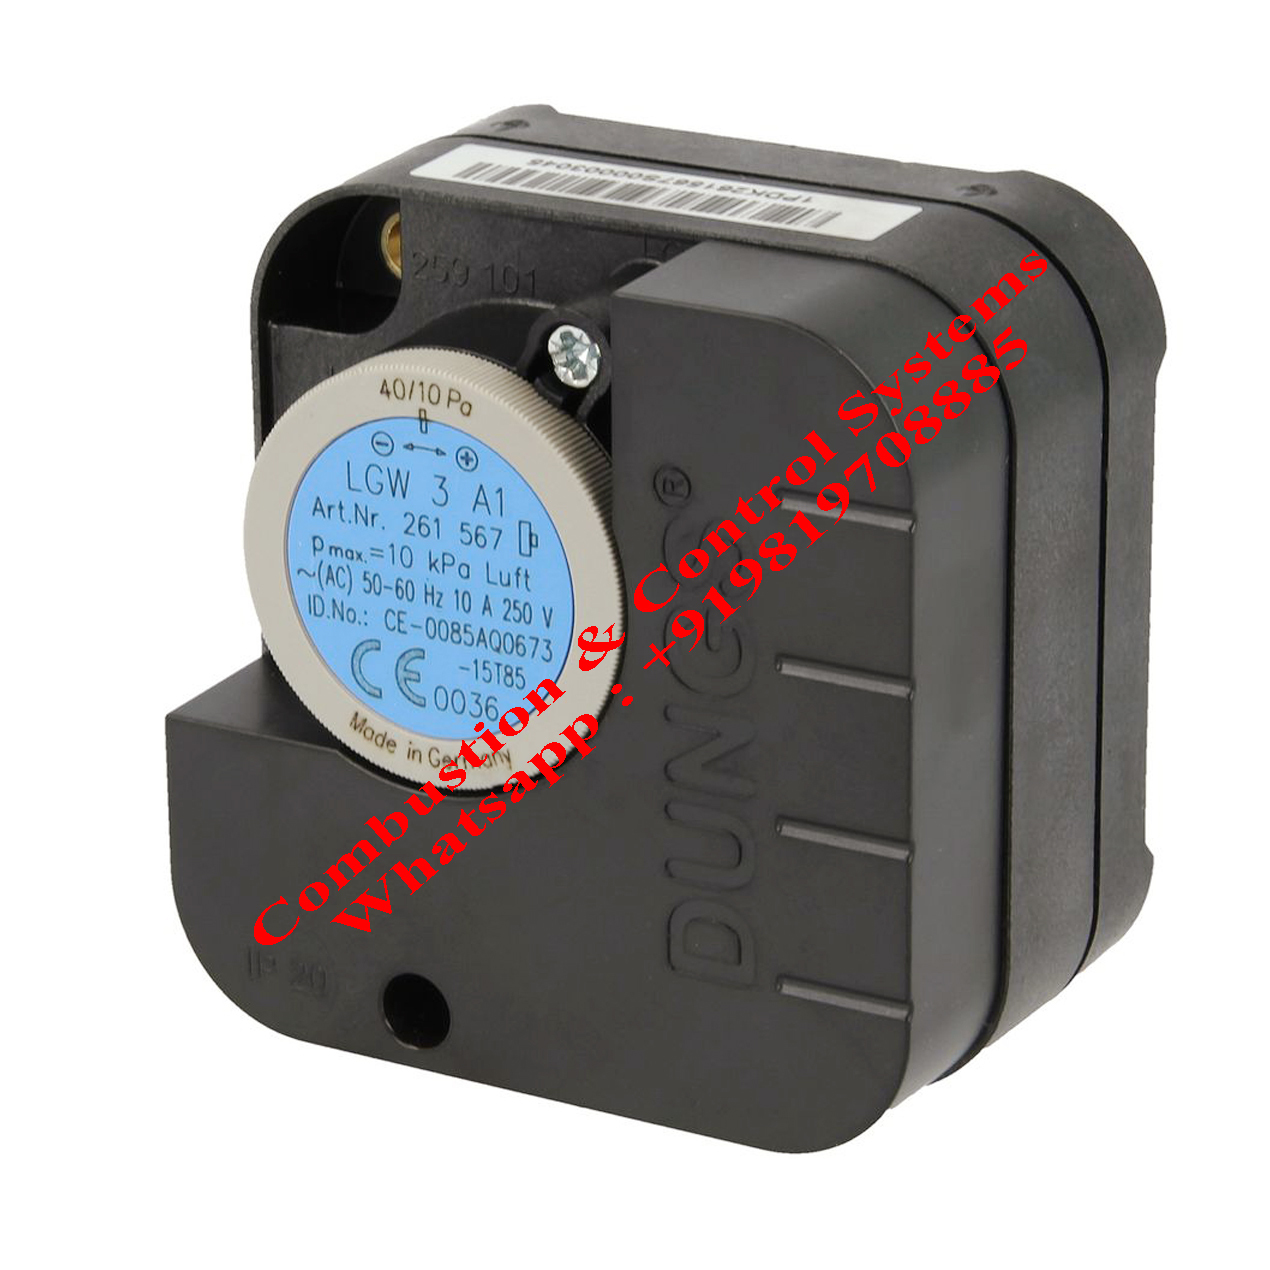 Dungs LGW3A1 Pressure Switch